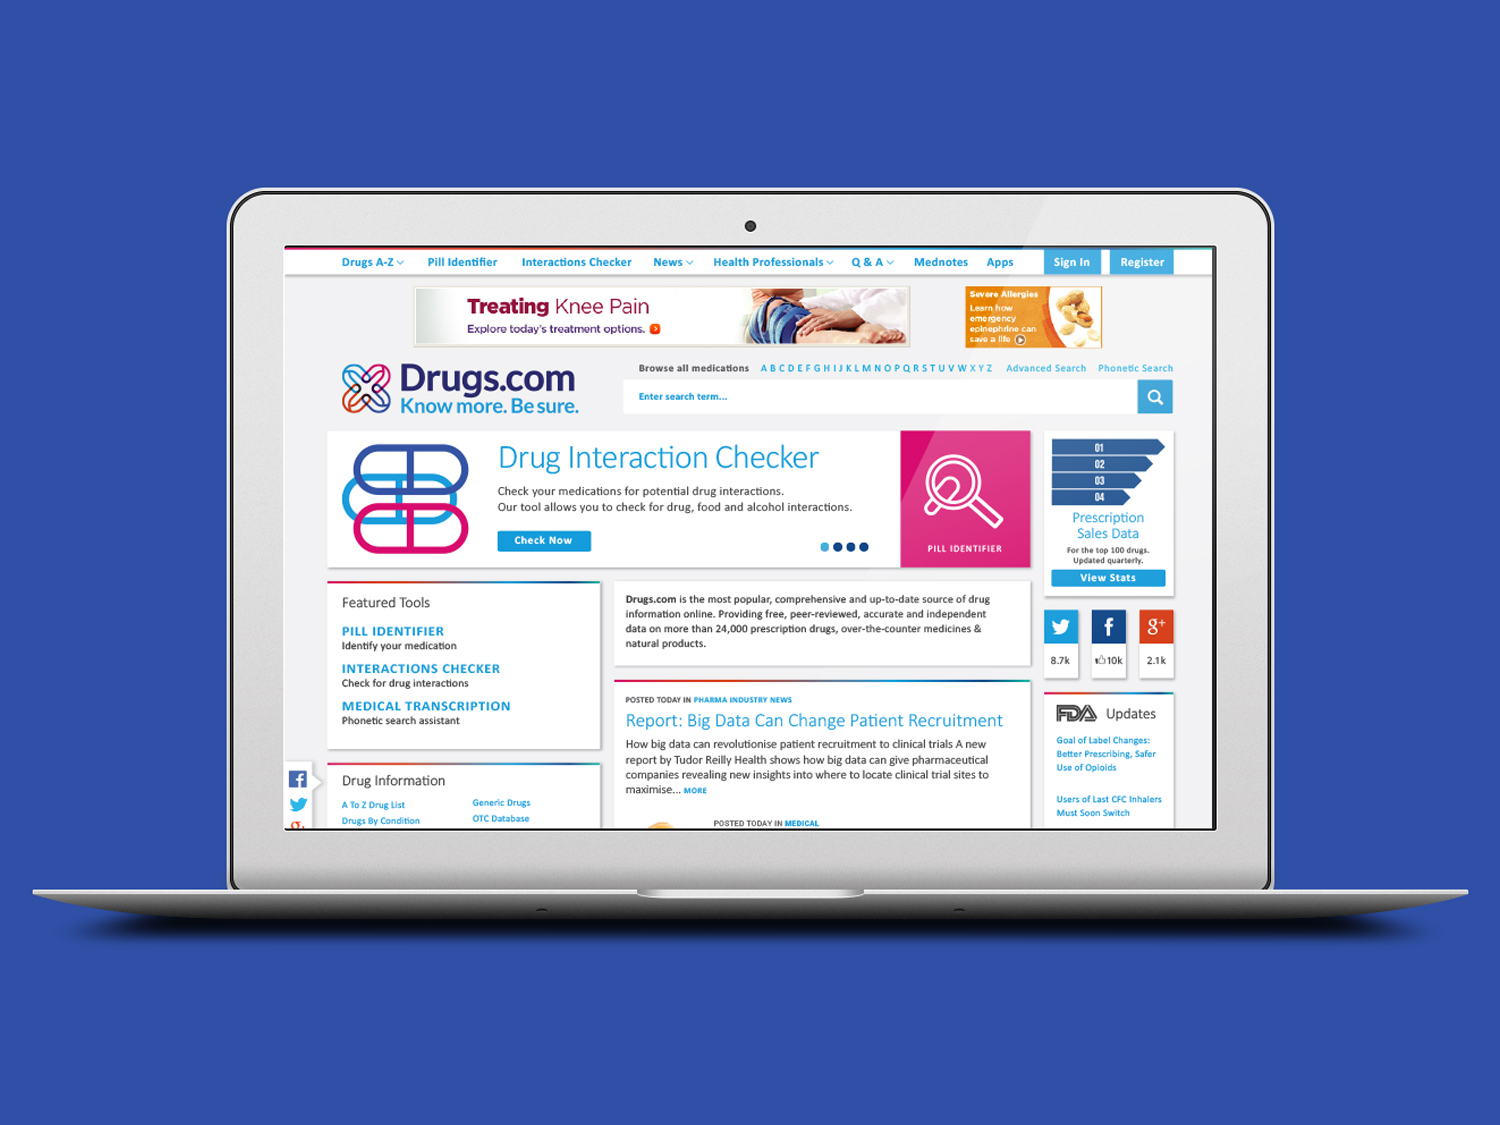 Image of Drugs.com website